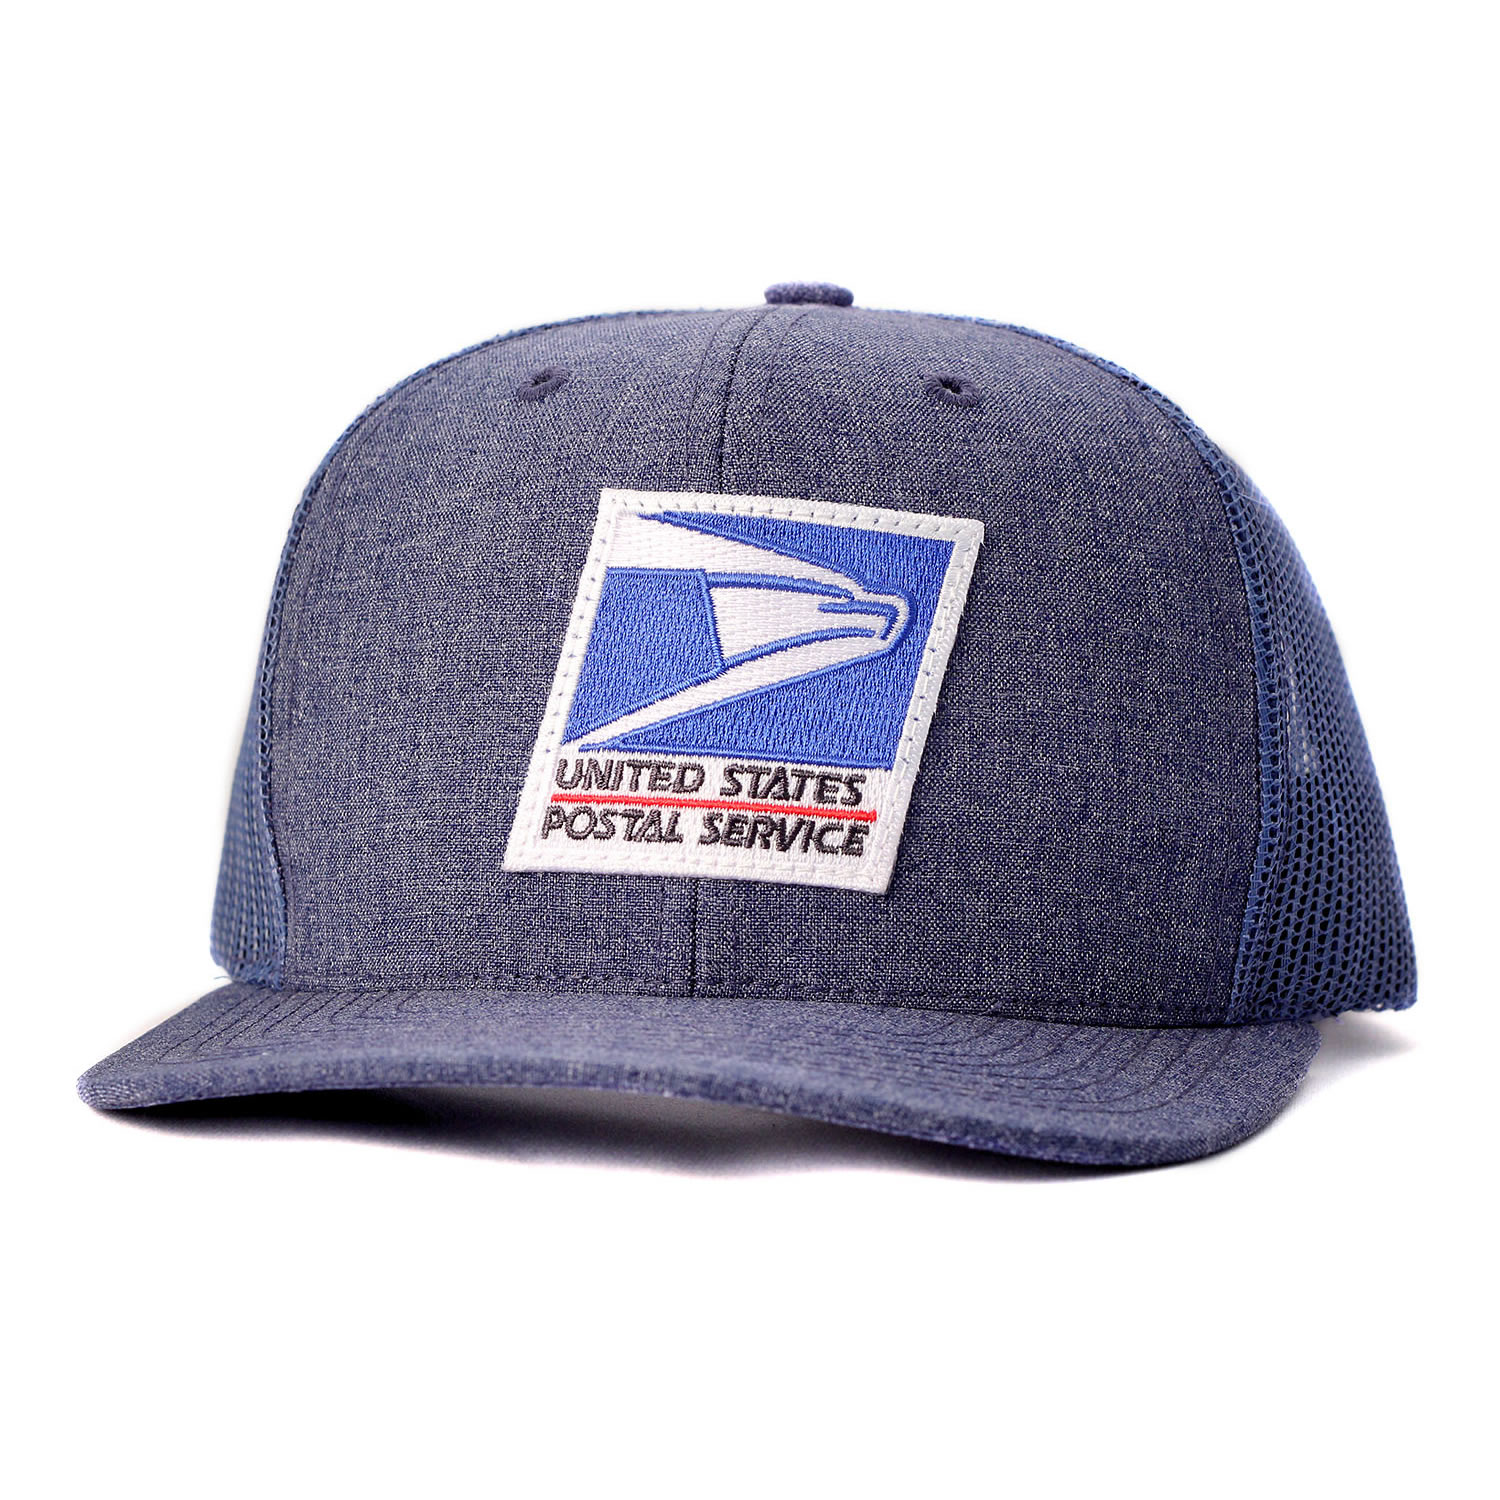 postal letter carrier uniform summer baseball cap